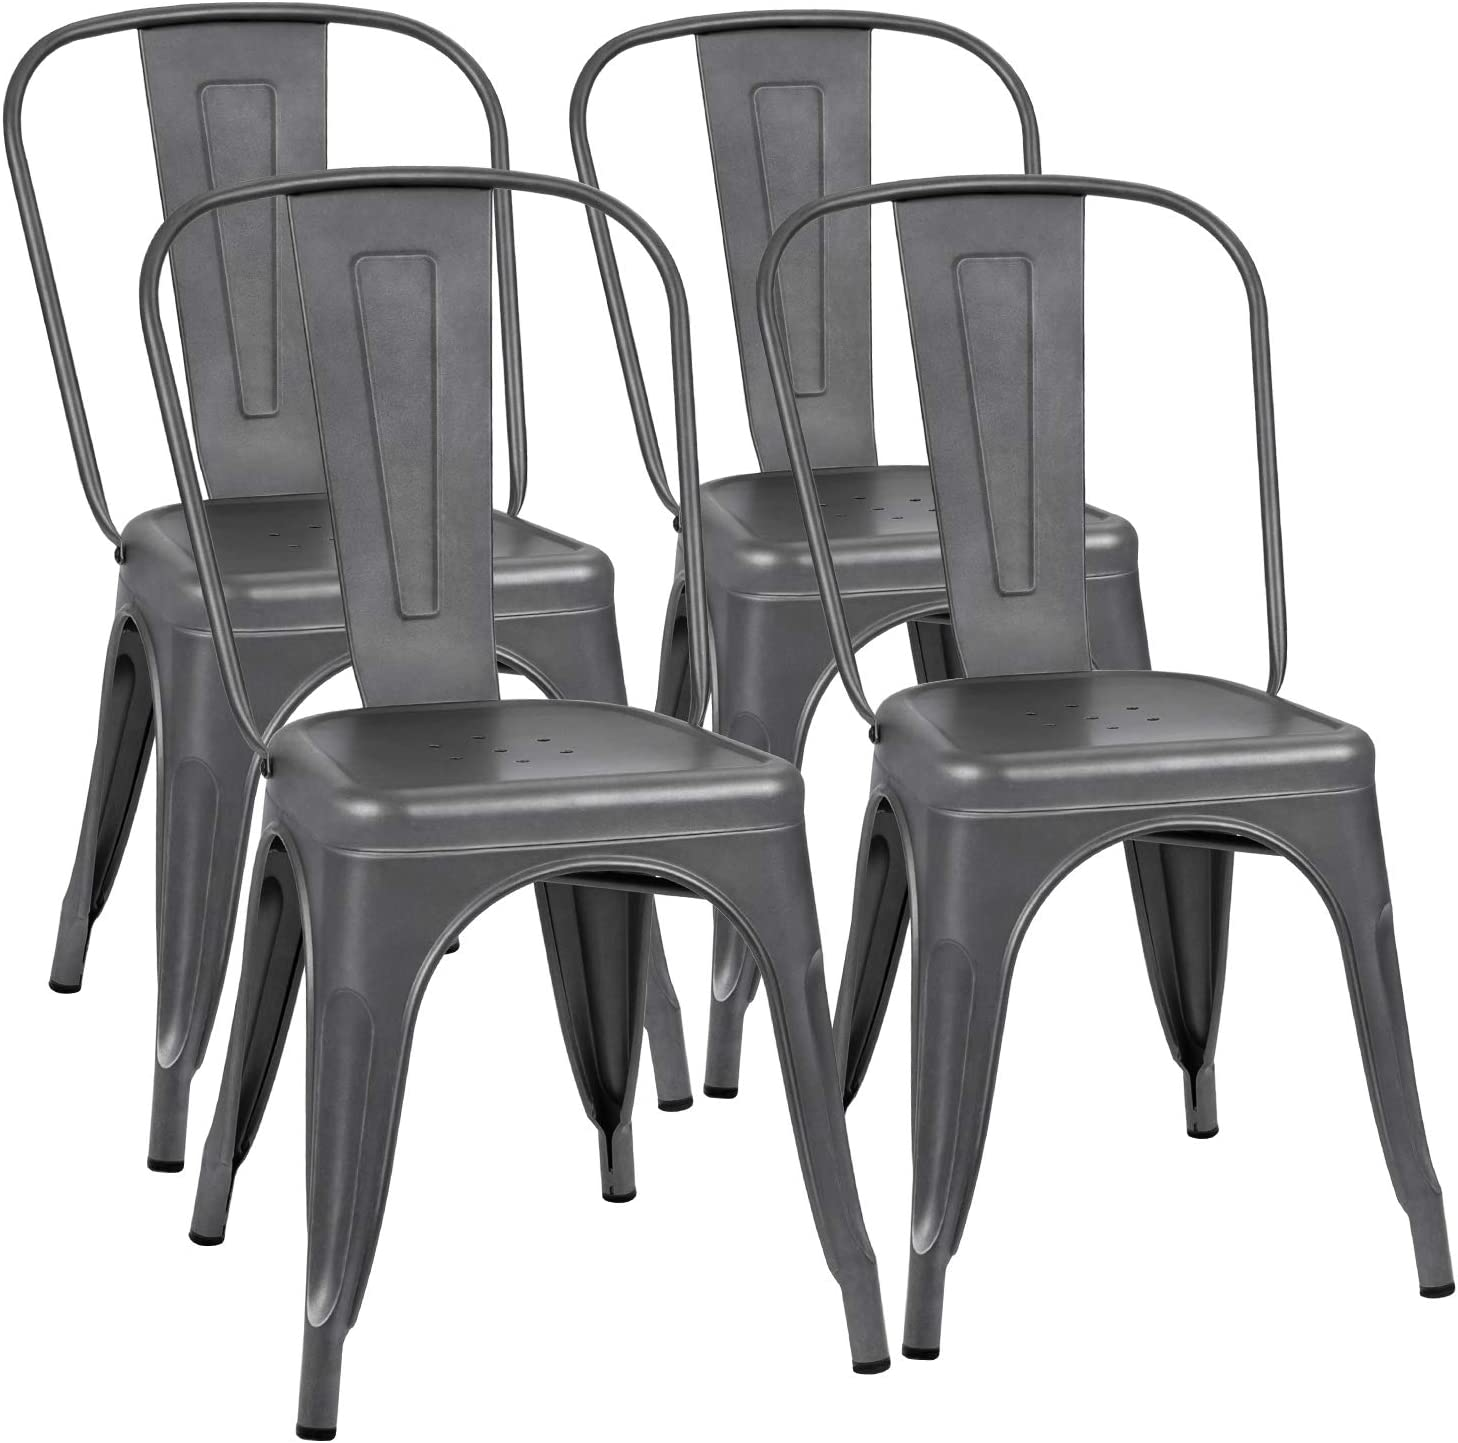 Flamaker Metal Dining Chairs Stackable Kitchen Dining Chairs Metal Chairs Bistro Cafe Side Chairs Height Restaurant Chairs Tolix Side Bar Chairs Grey Set of 4